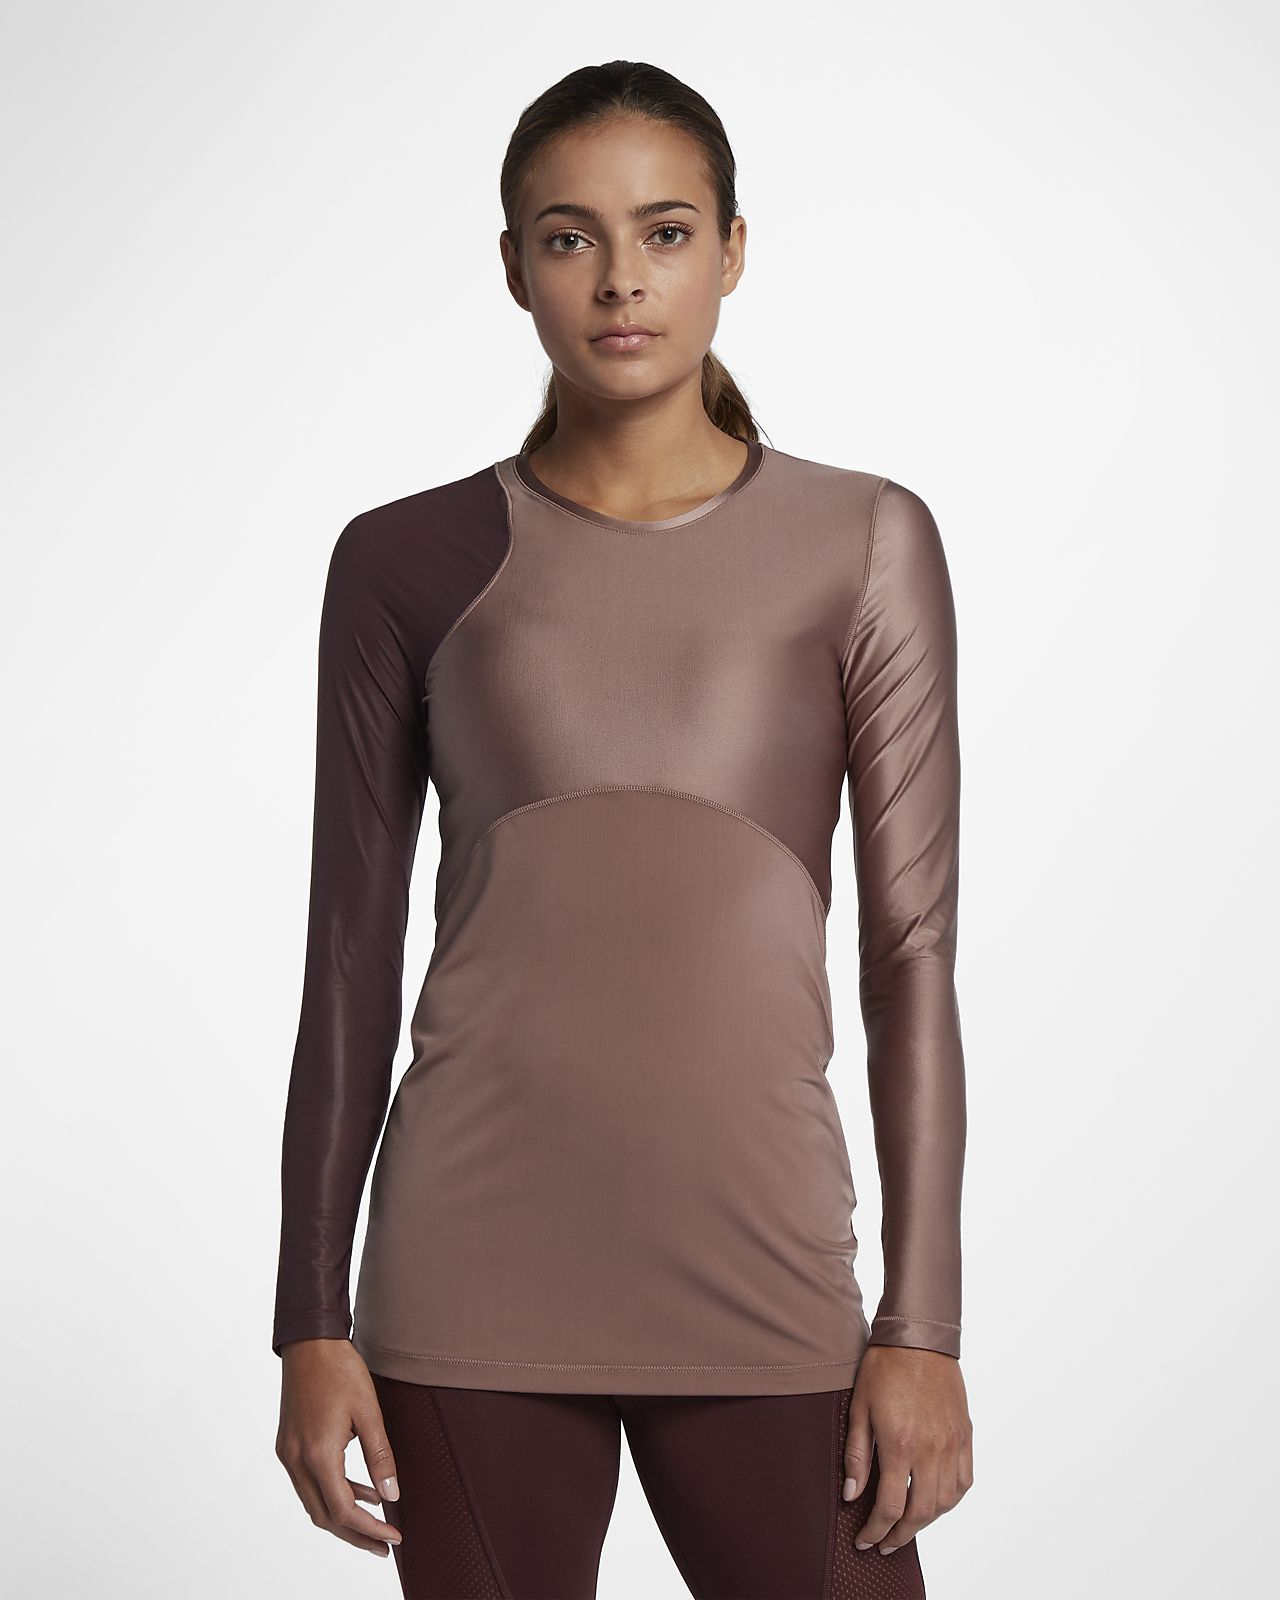 8f7b4f105c Nike Pro HyperCool Women s Long-Sleeve Training Top. Nike.com MY